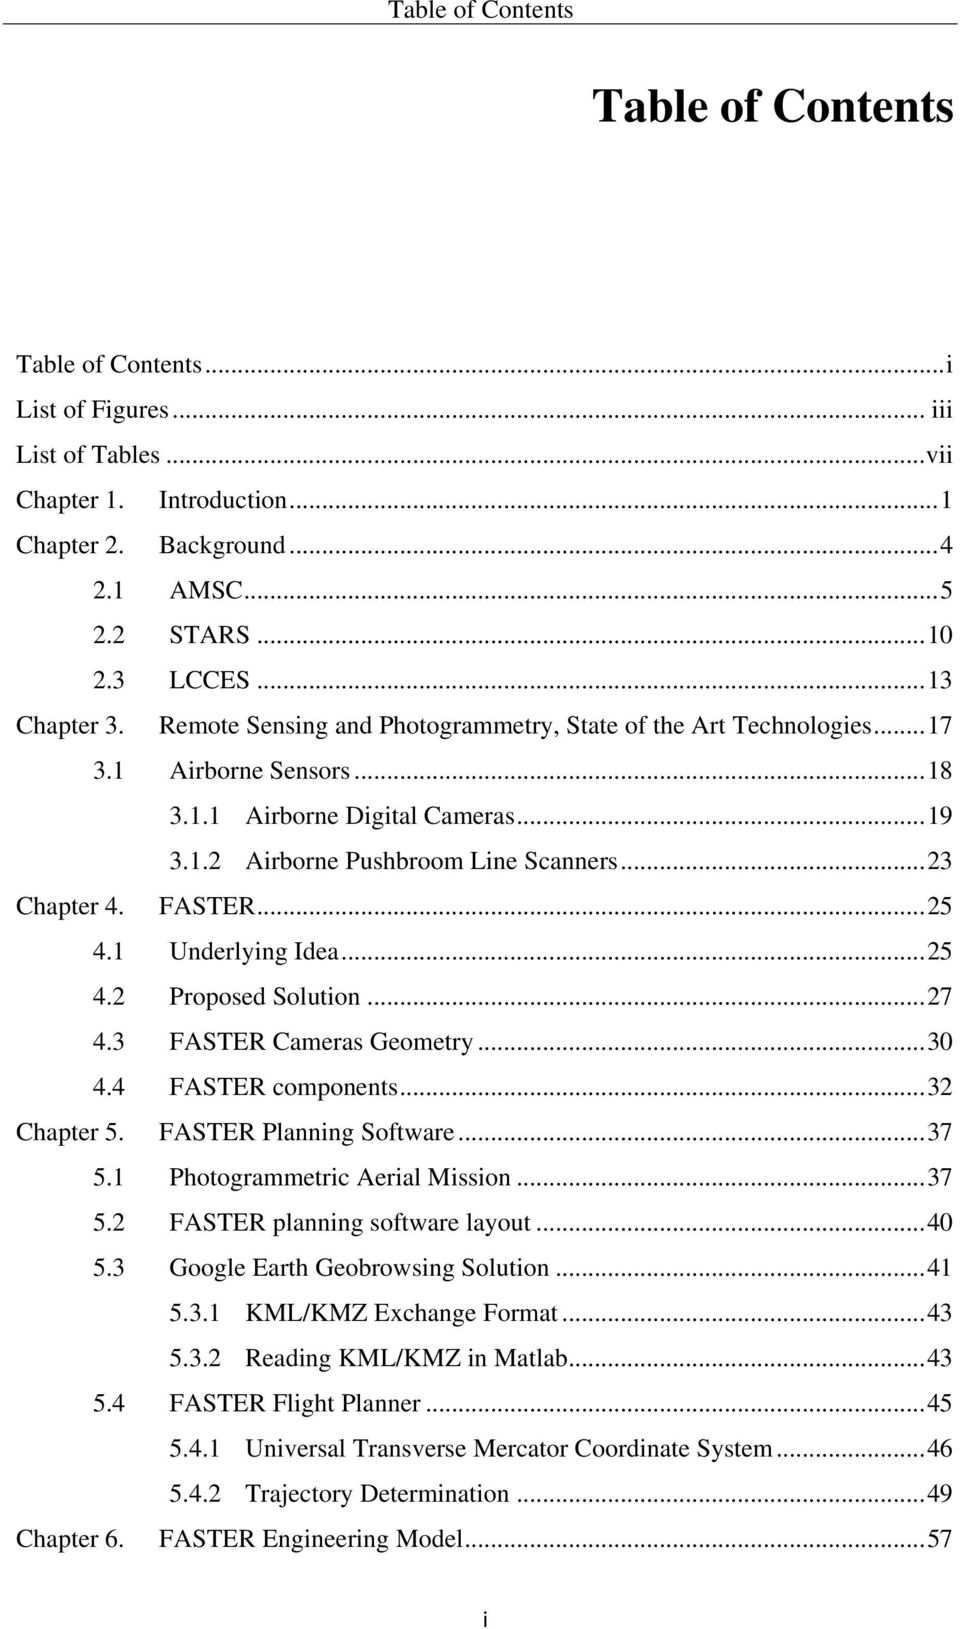 .. 23 Chapter 4. FASTER... 25 4.1 Underlying Idea... 25 4.2 Proposed Solution... 27 4.3 FASTER Cameras Geometry... 30 4.4 FASTER components... 32 Chapter 5. FASTER Planning Software... 37 5.